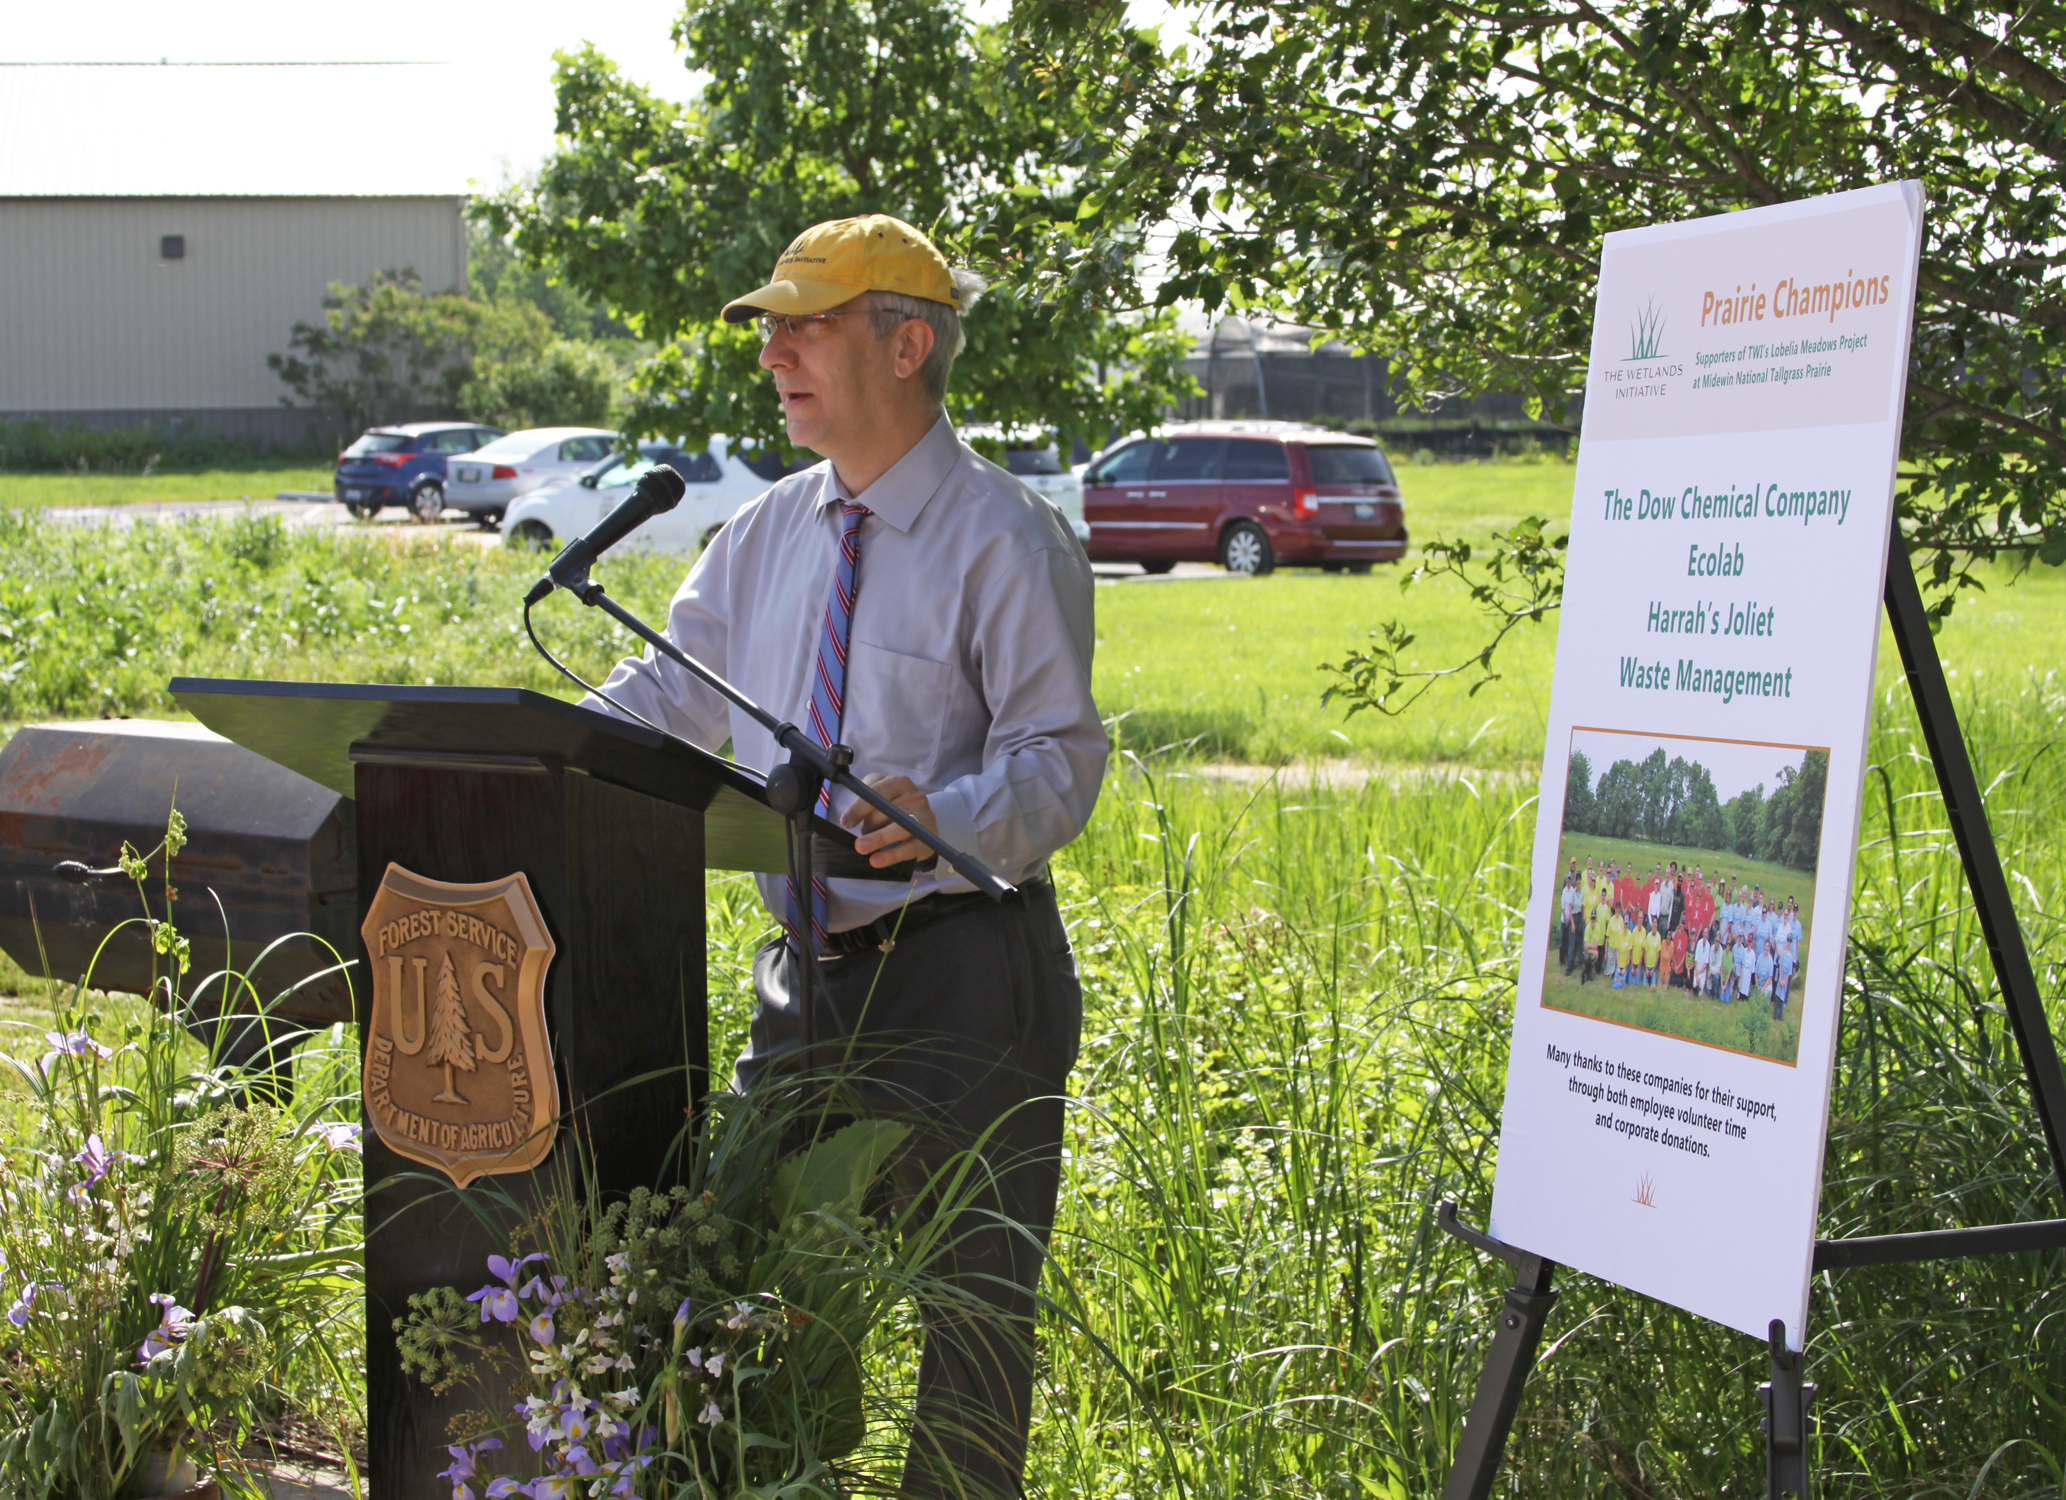 Paul Botts, TWI's Executive Director, speaks during the Prairie Champions event. This special event recognized four local companies that have supported TWI's Lobelia Meadows project at Midewin through both employee volunteering and corporate donations.